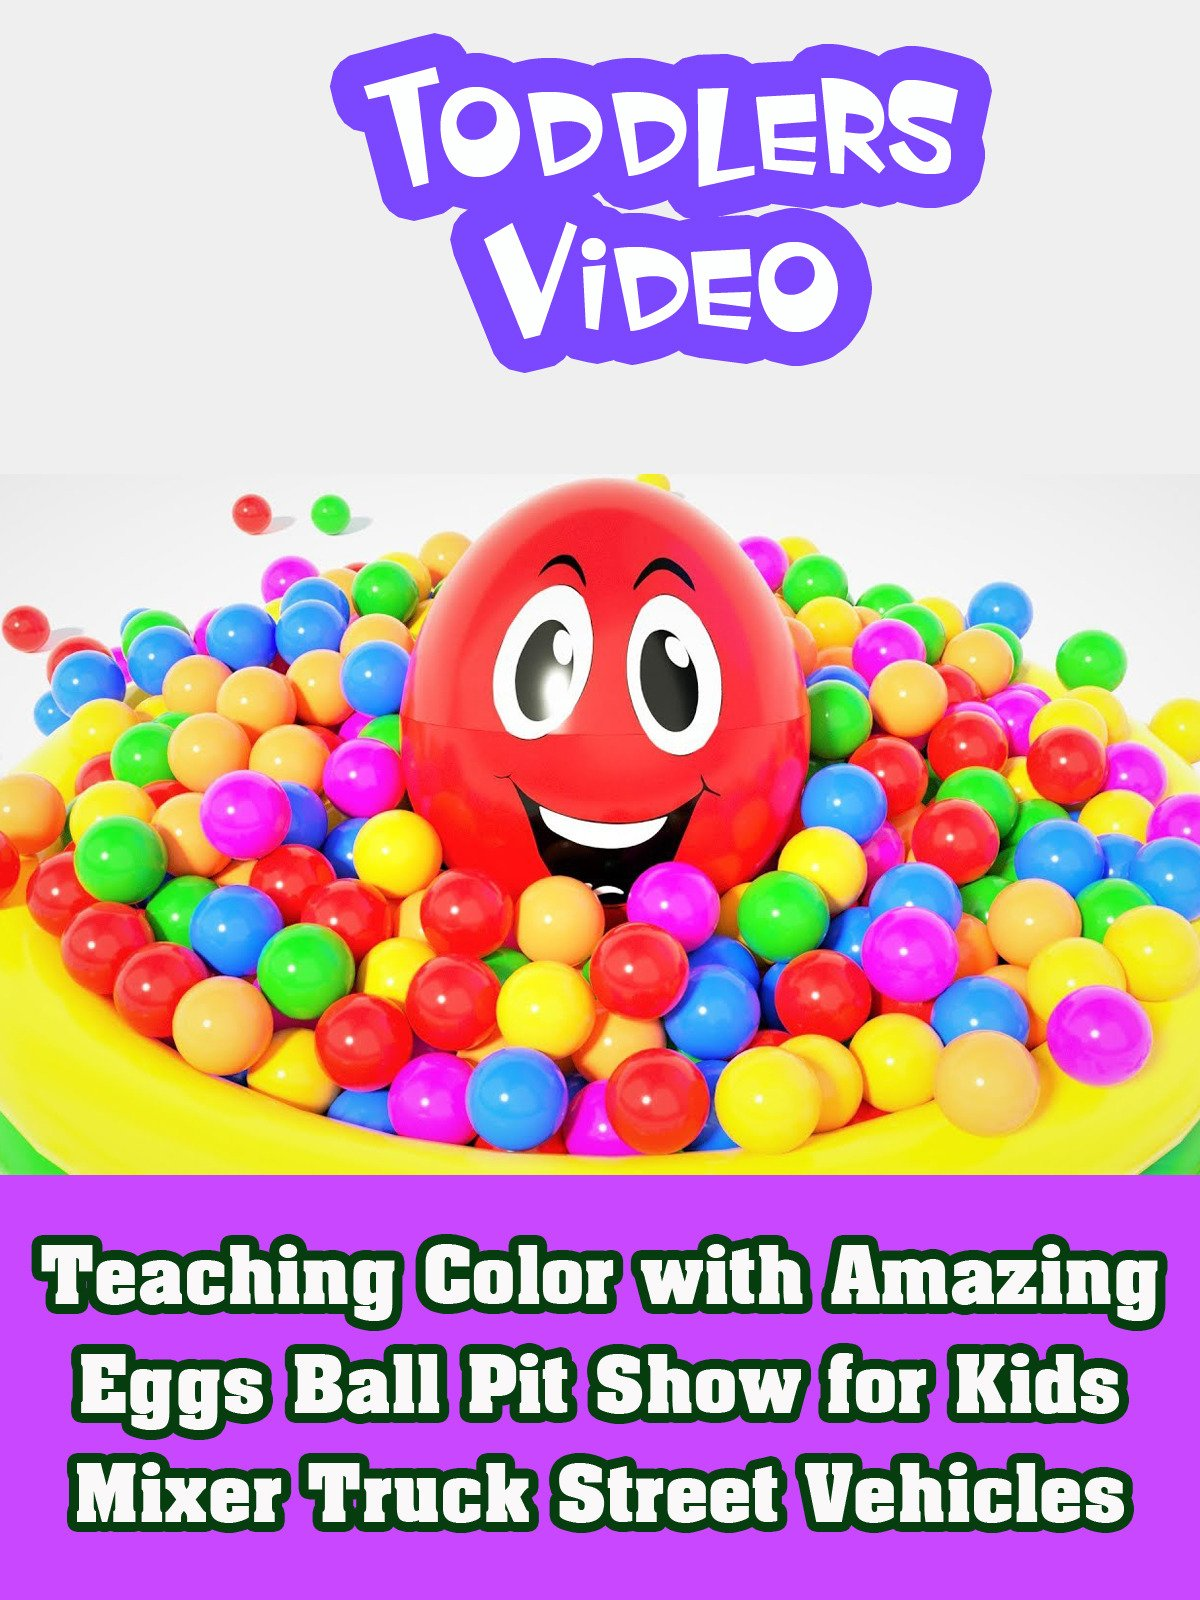 Teaching Color with Amazing Eggs Ball Pit Show for Kids Mixer Truck Street Vehicles